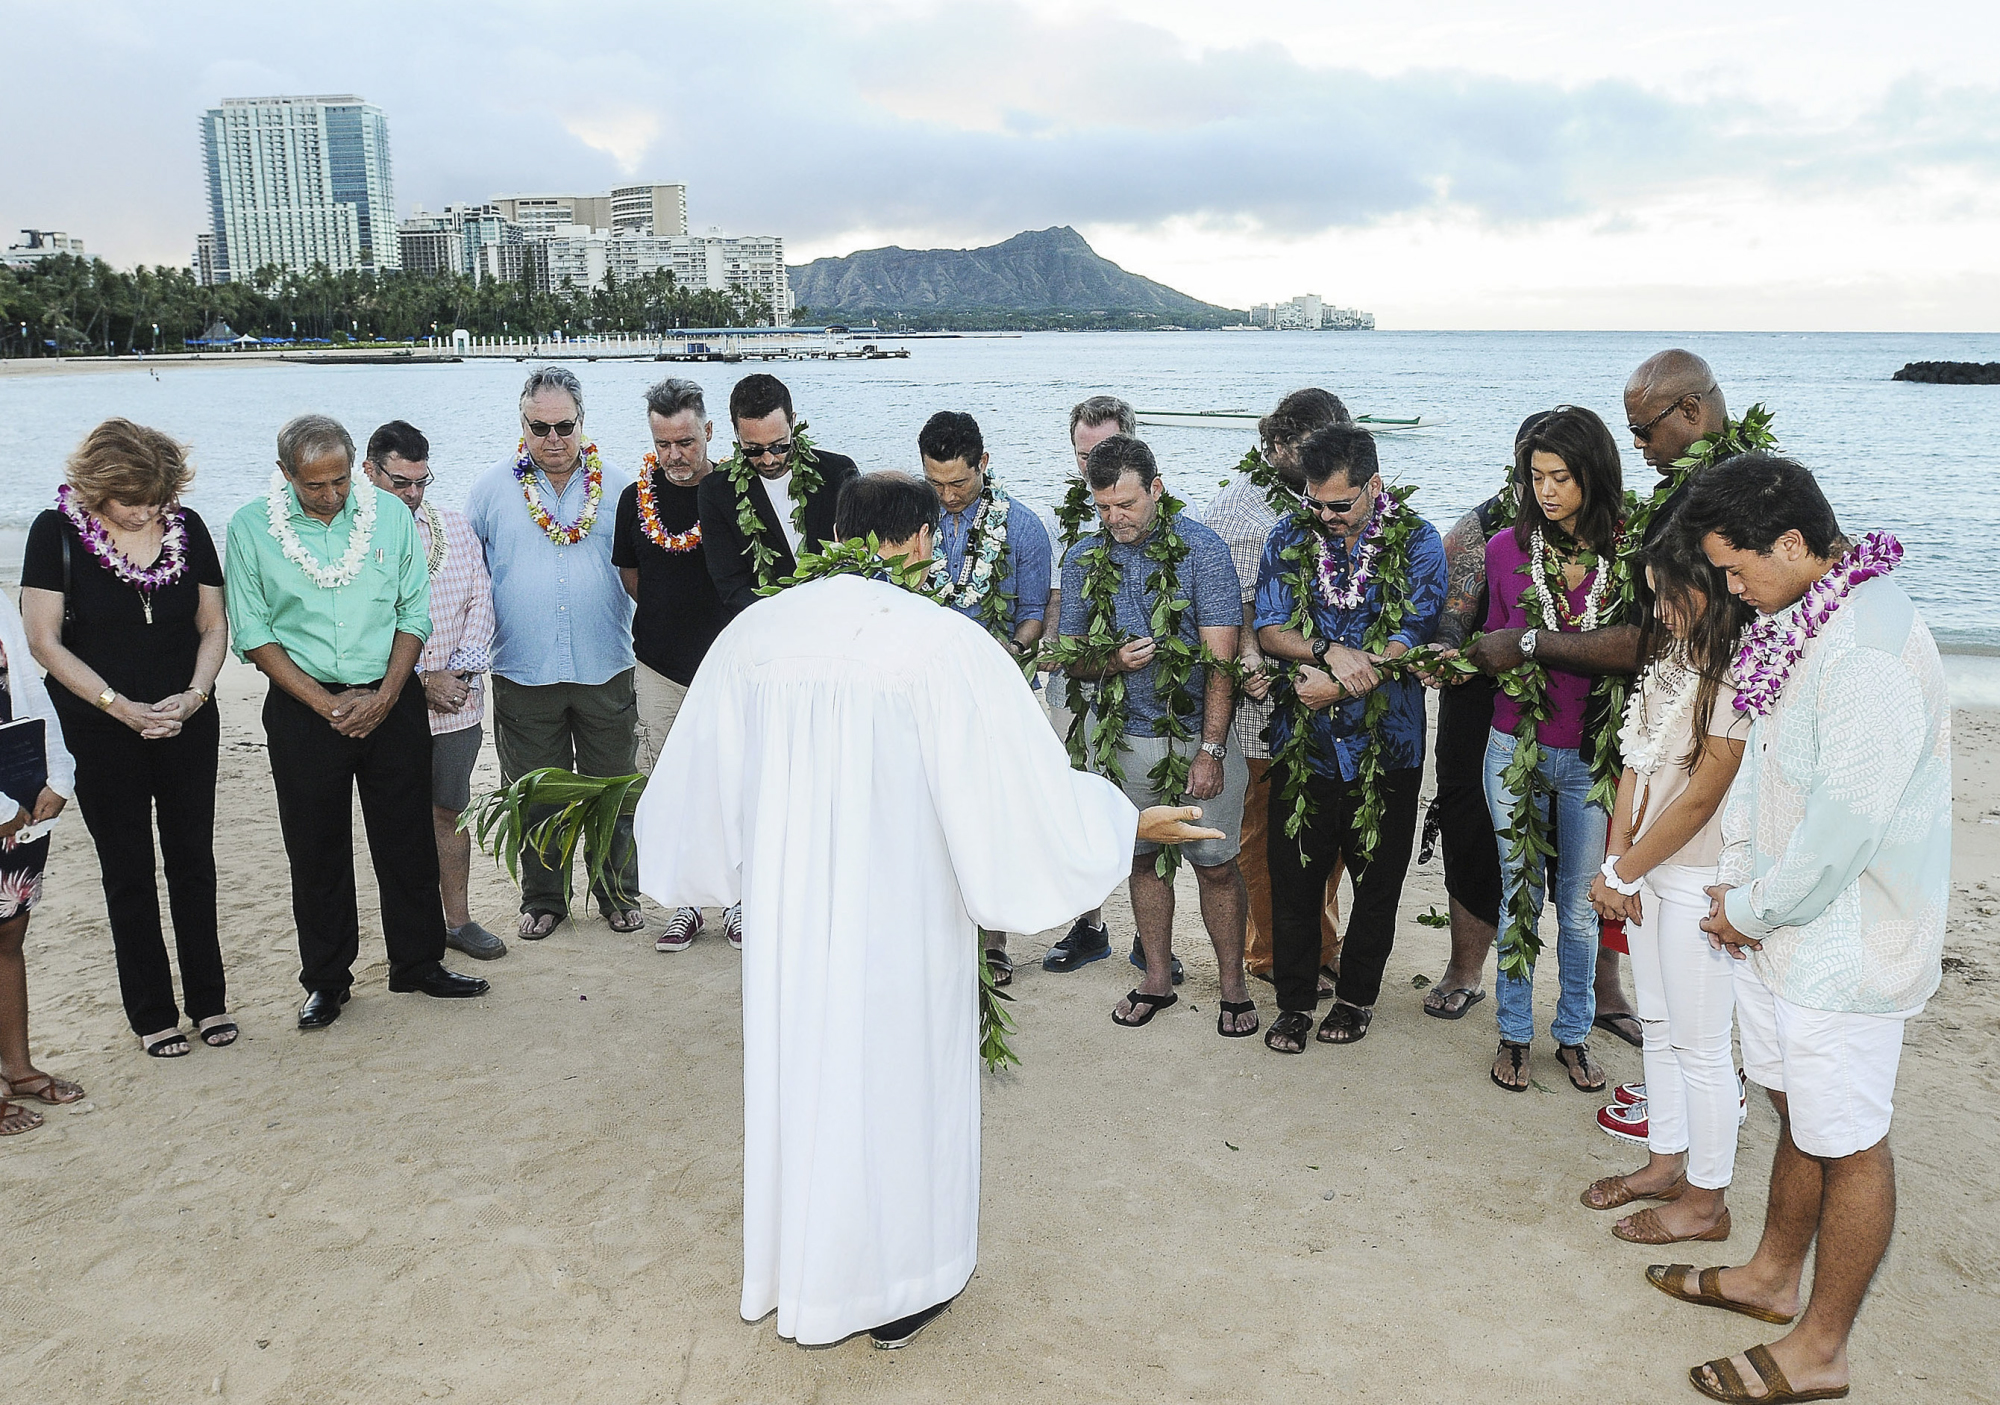 The ceremony closed with a traditional Pule Ho'oku'u prayer.